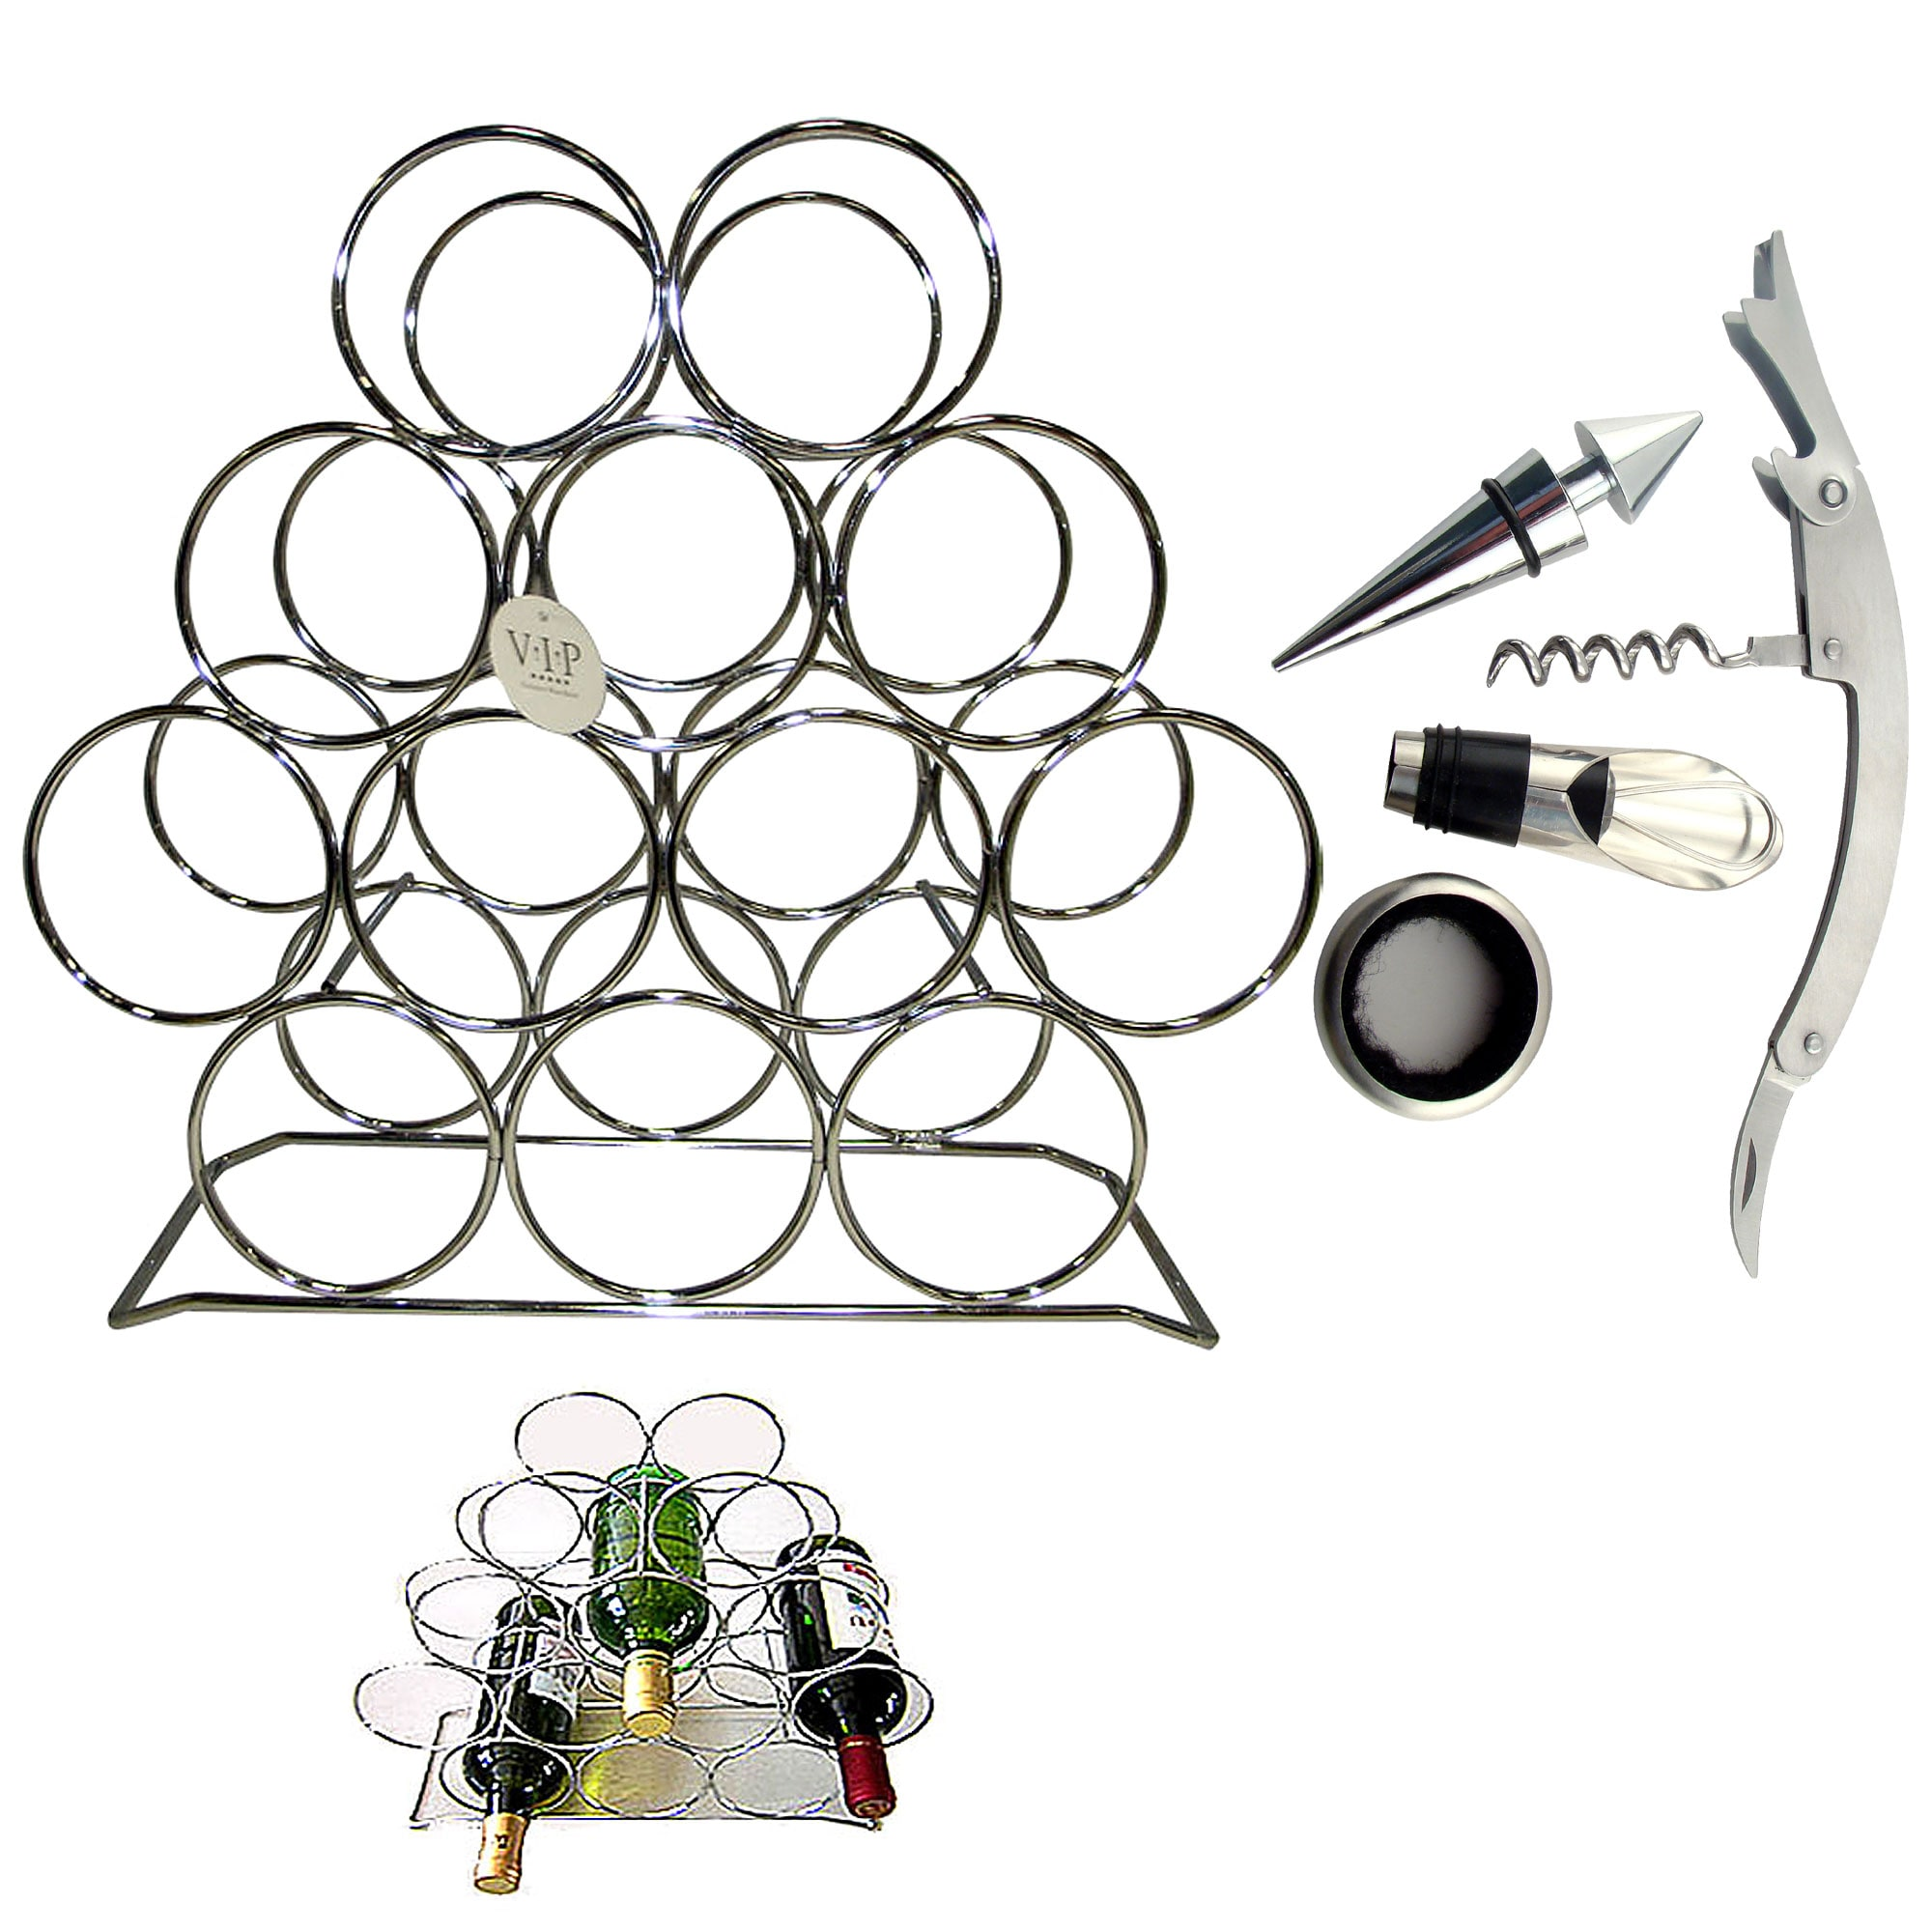 VIP Wine Accessories Metal Rack and Wine Accessories Set